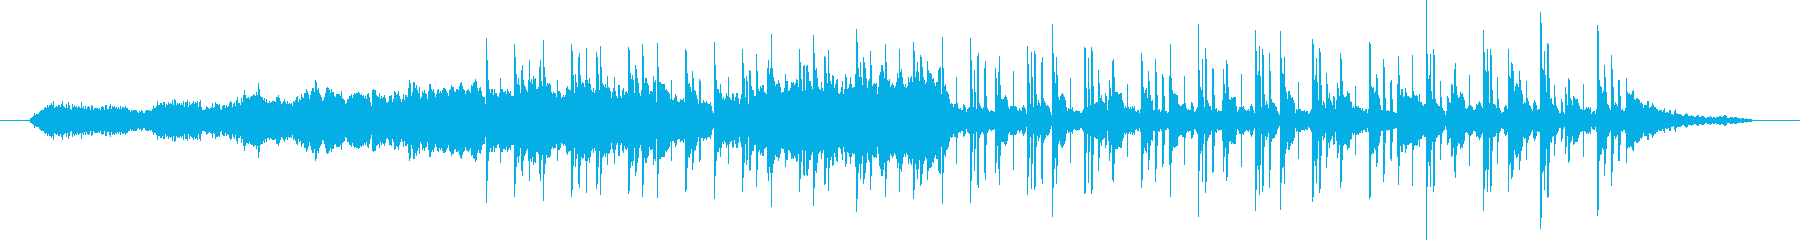 Beautiful and unbreakable instrumental's reproduced waveform